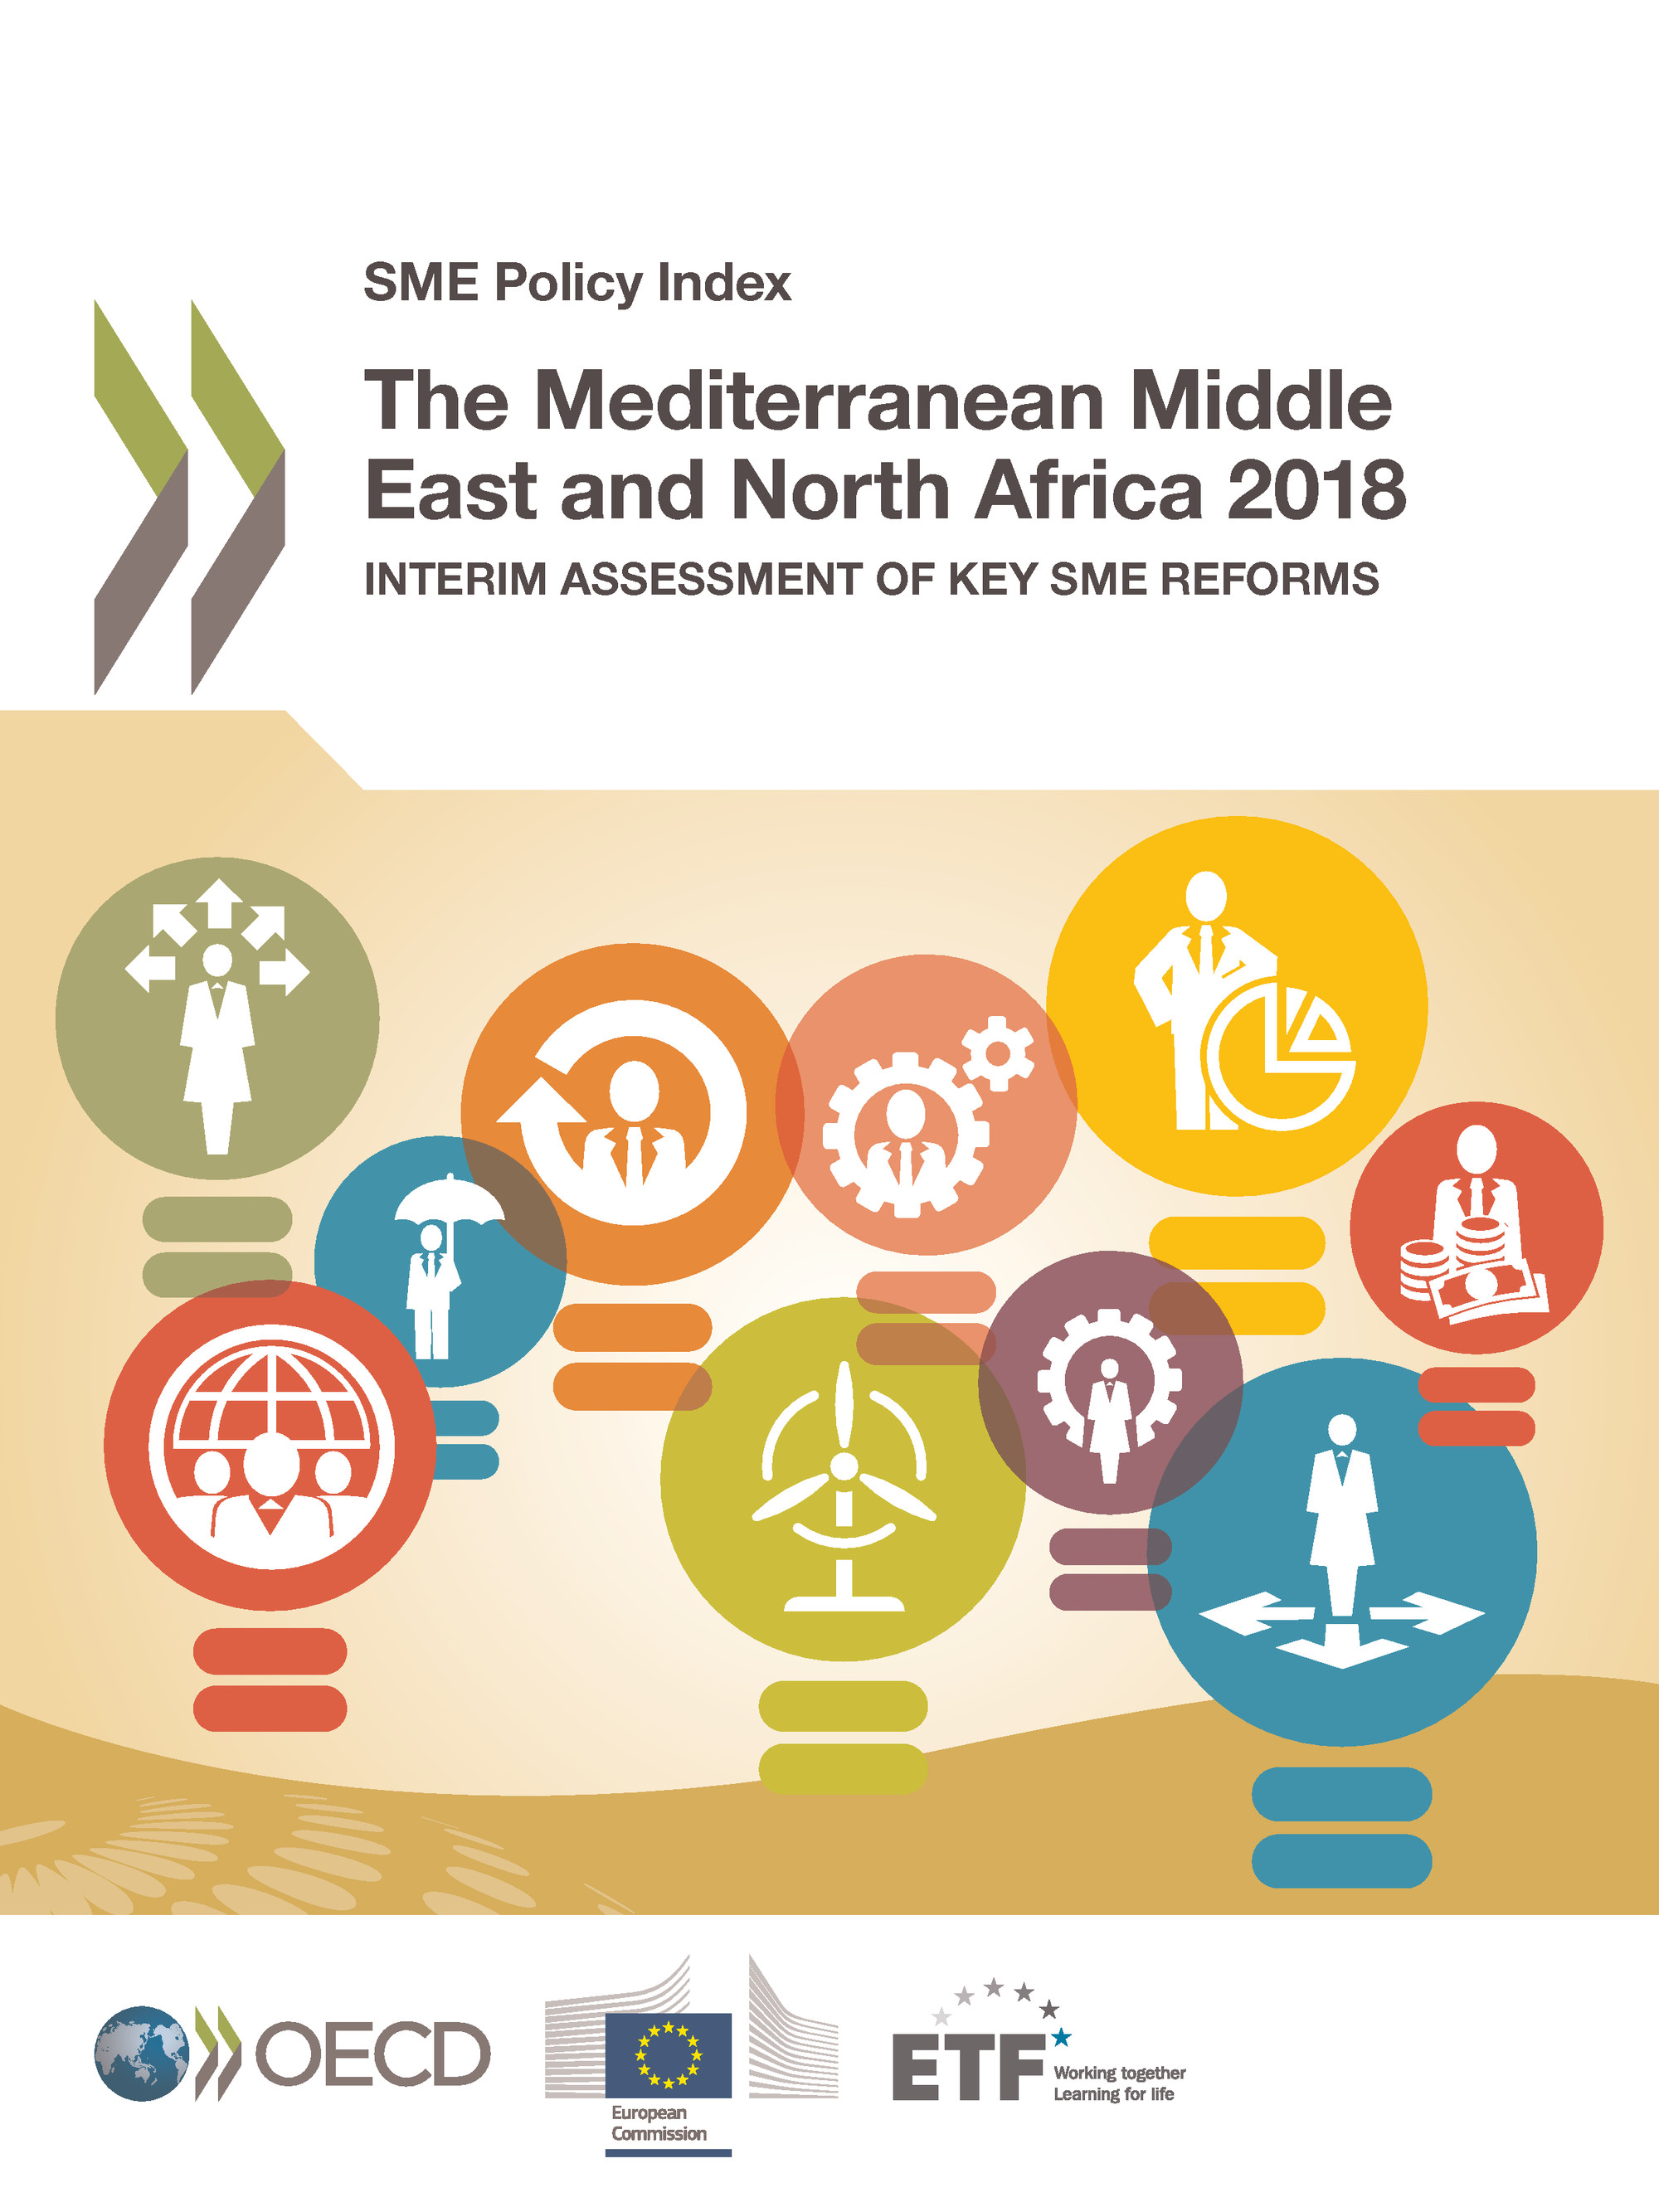 The Mediterranean Middle East and North Africa 2018 De  Collectif - OCDE / OECD